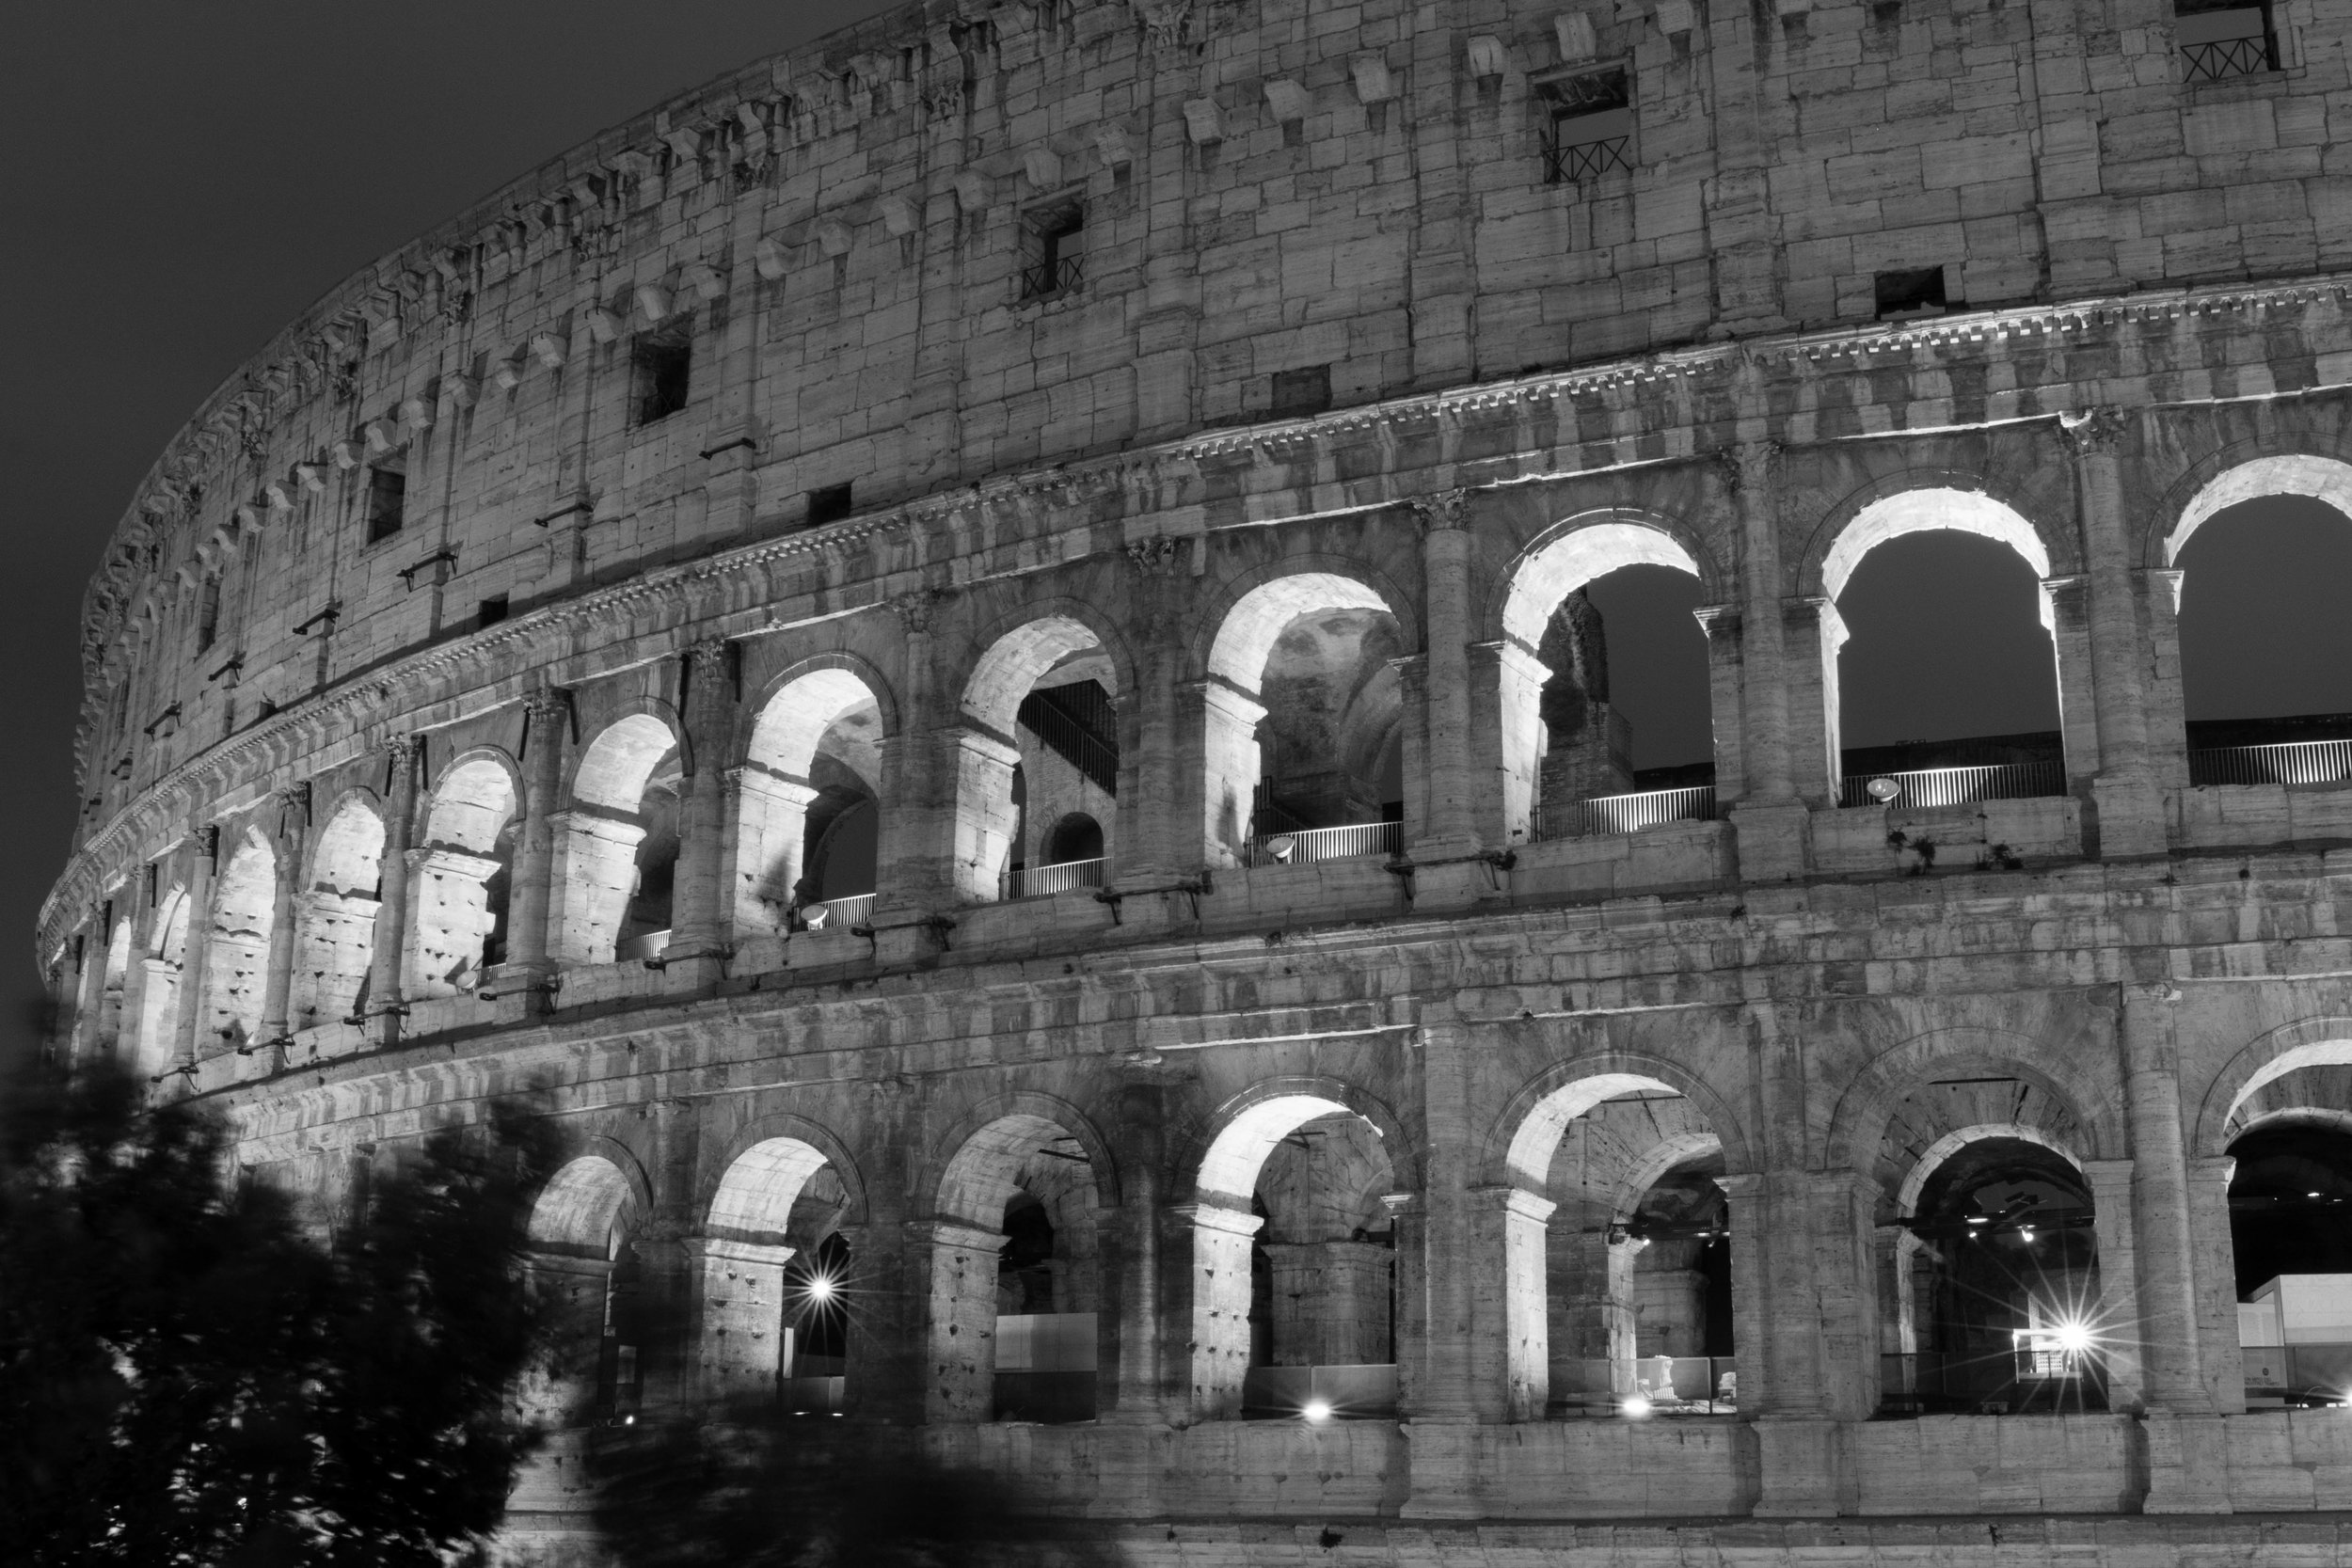 Visiting the colosseum at night for night photography